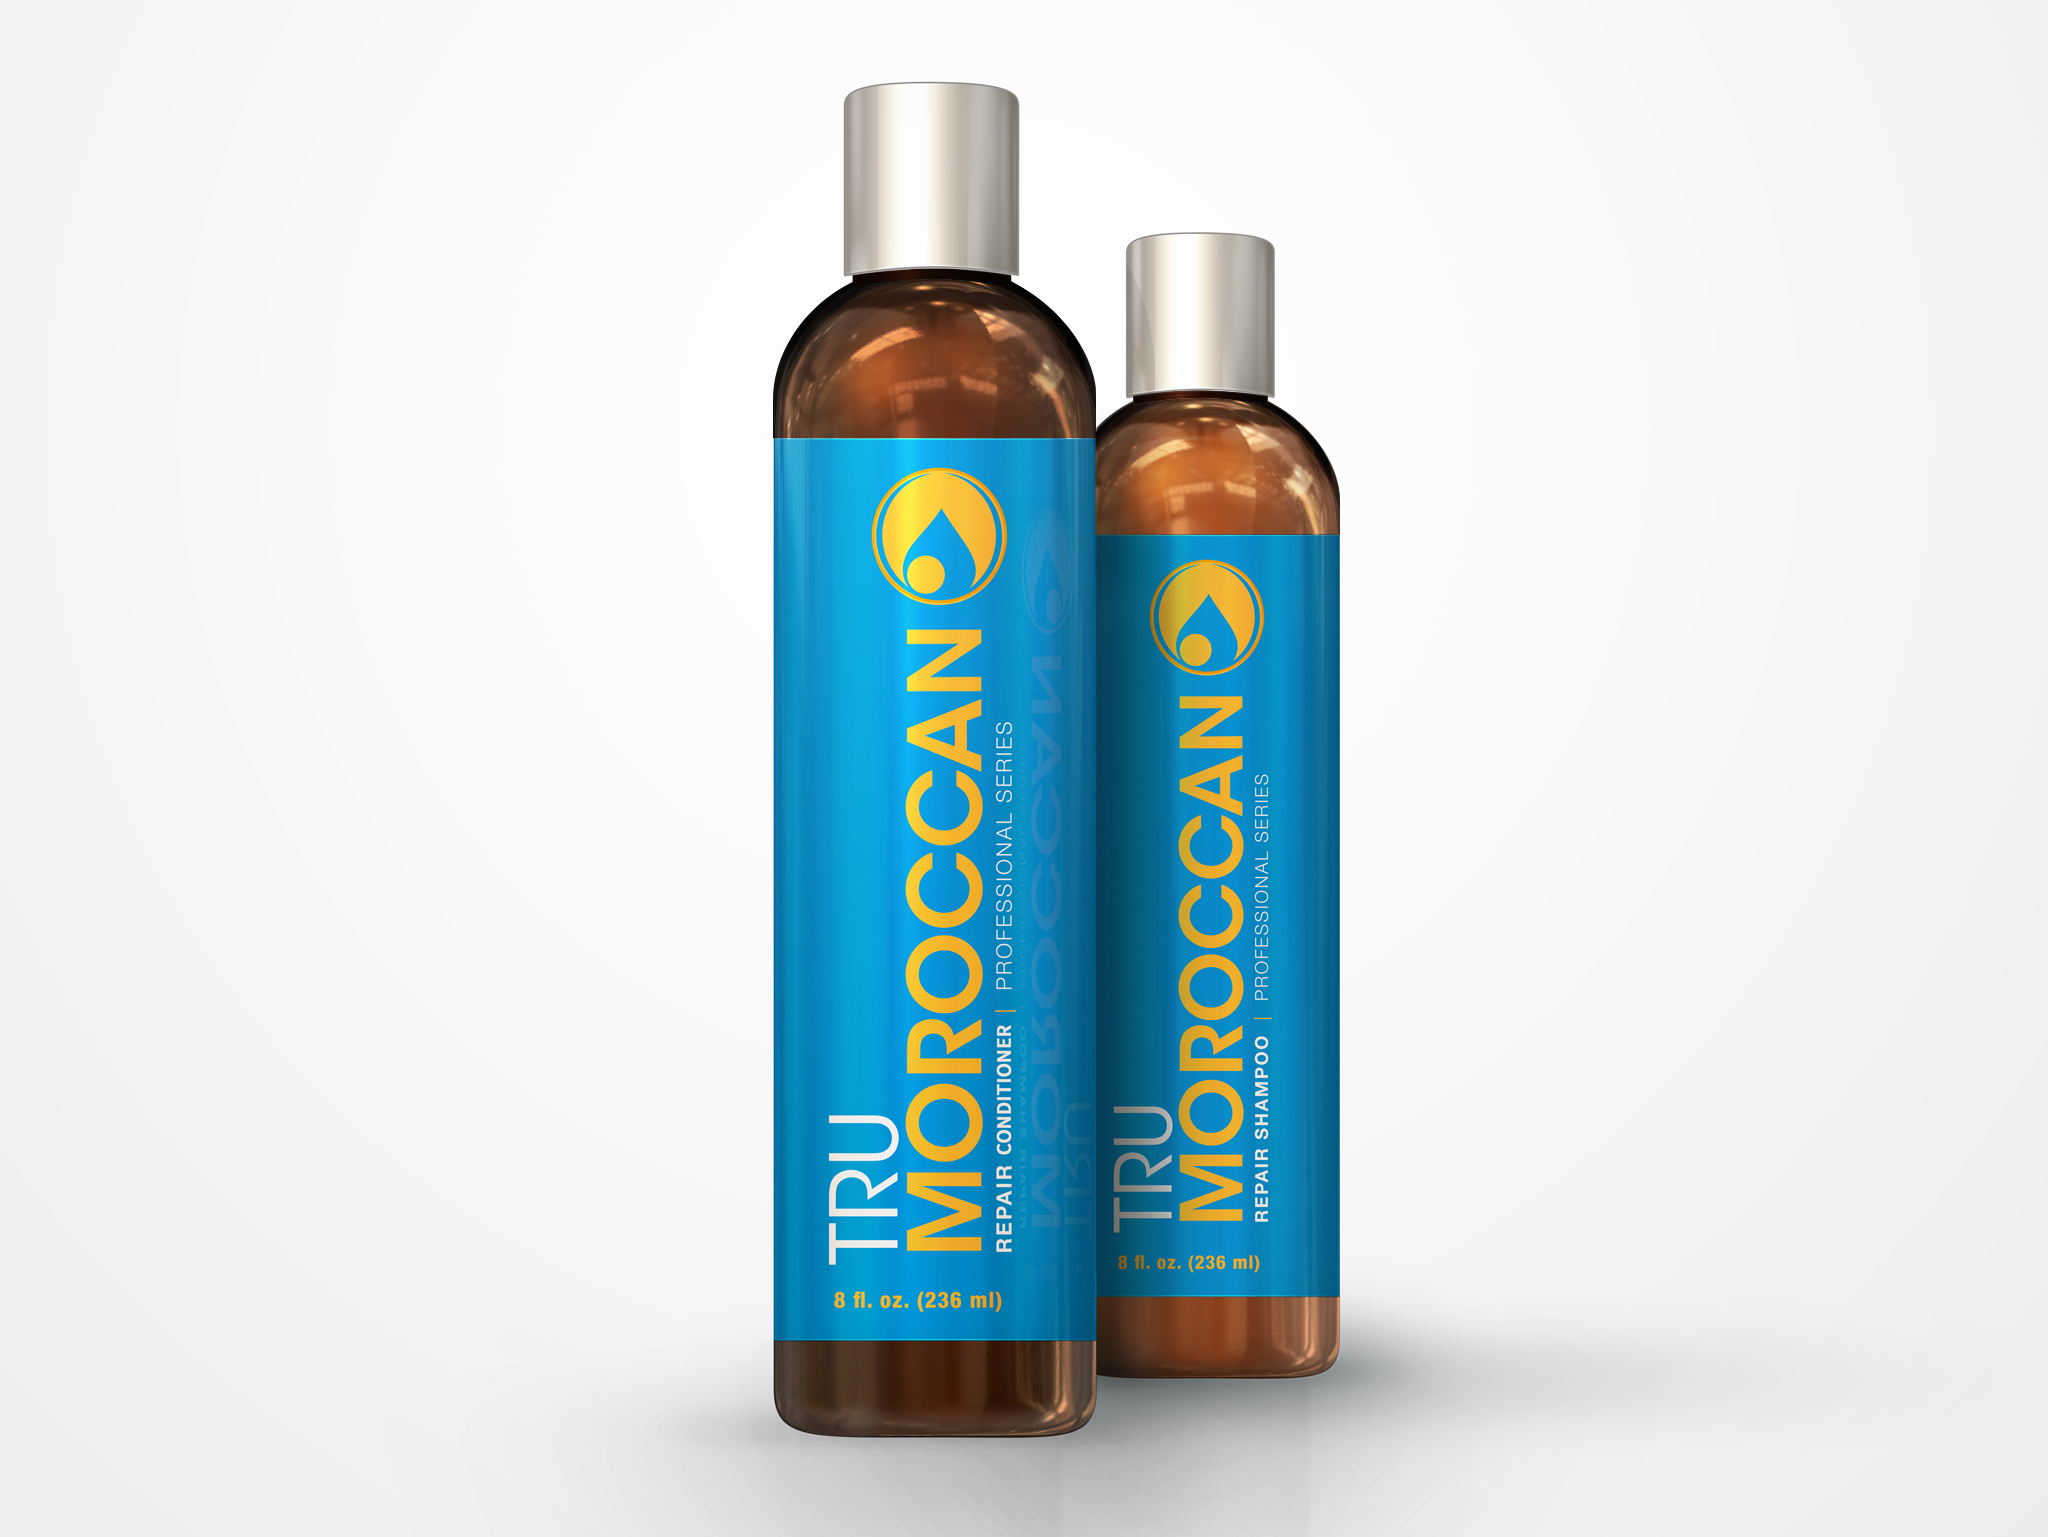 Create images for Tru Moroccan Products